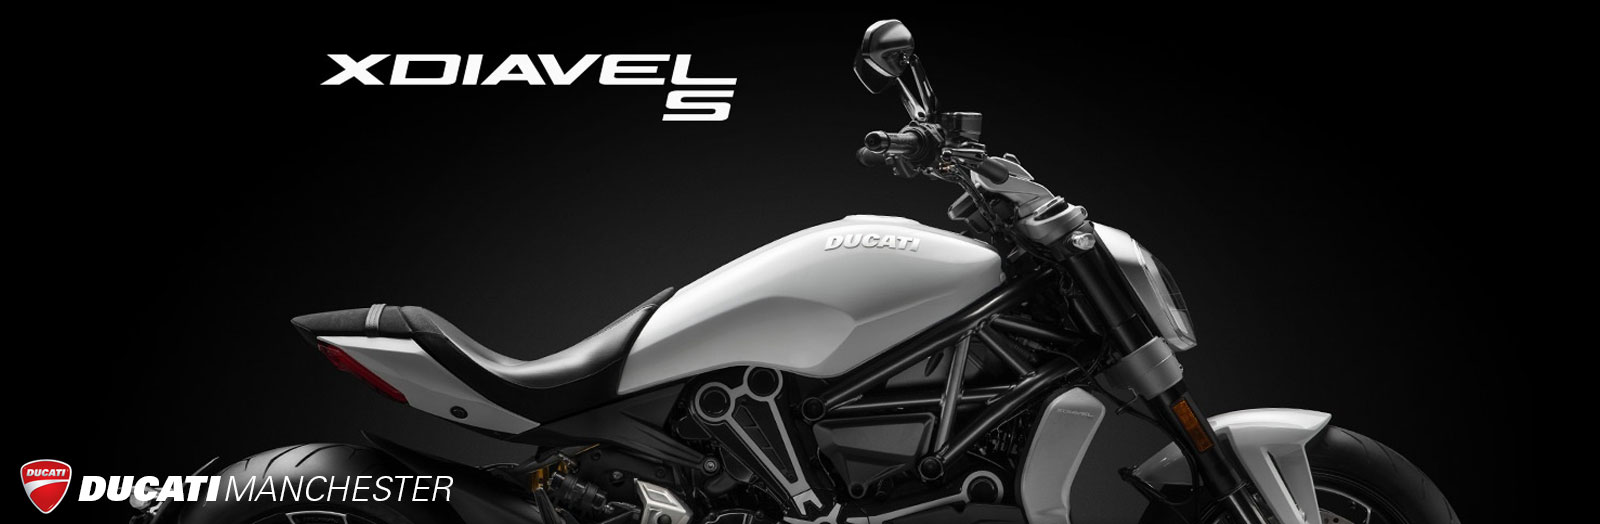 XDiavel now in white